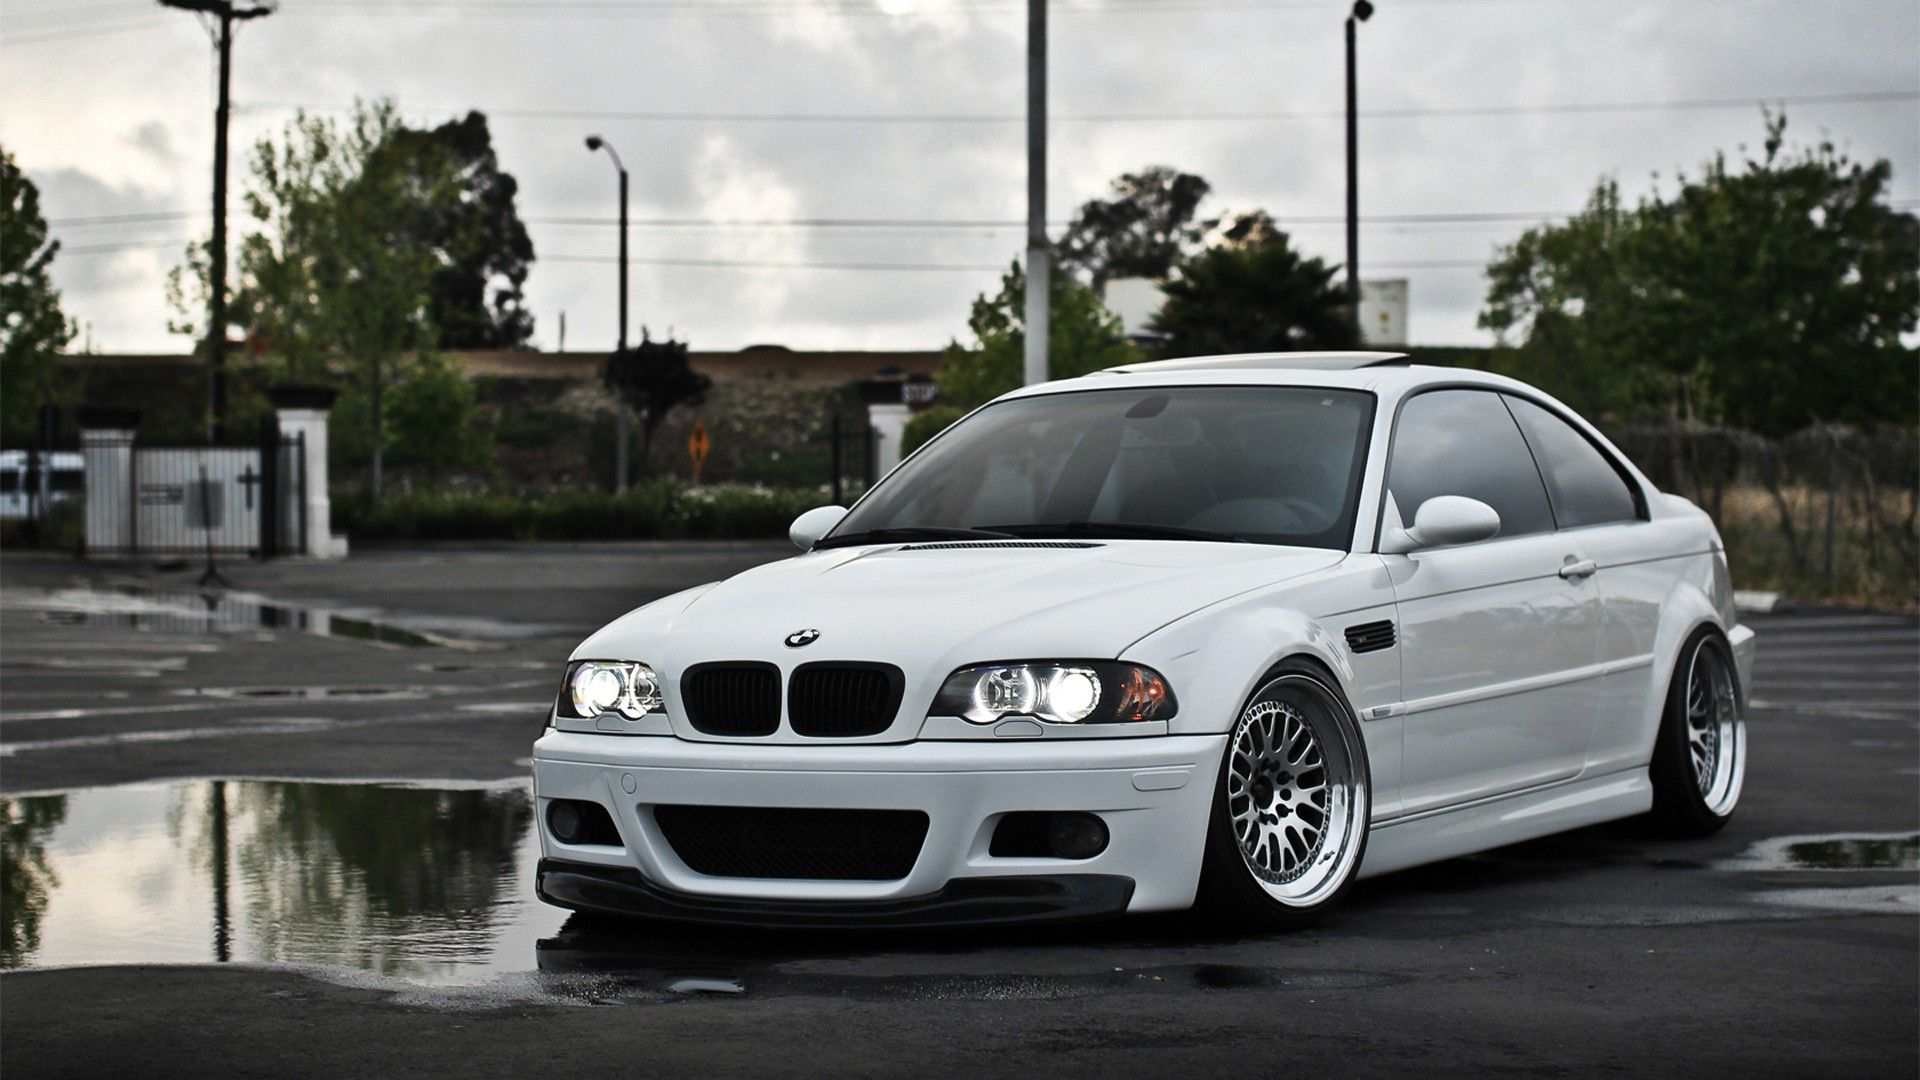 Wallpaper bmw e46 m3 wallpapers hd free download pic download voltagebd Gallery